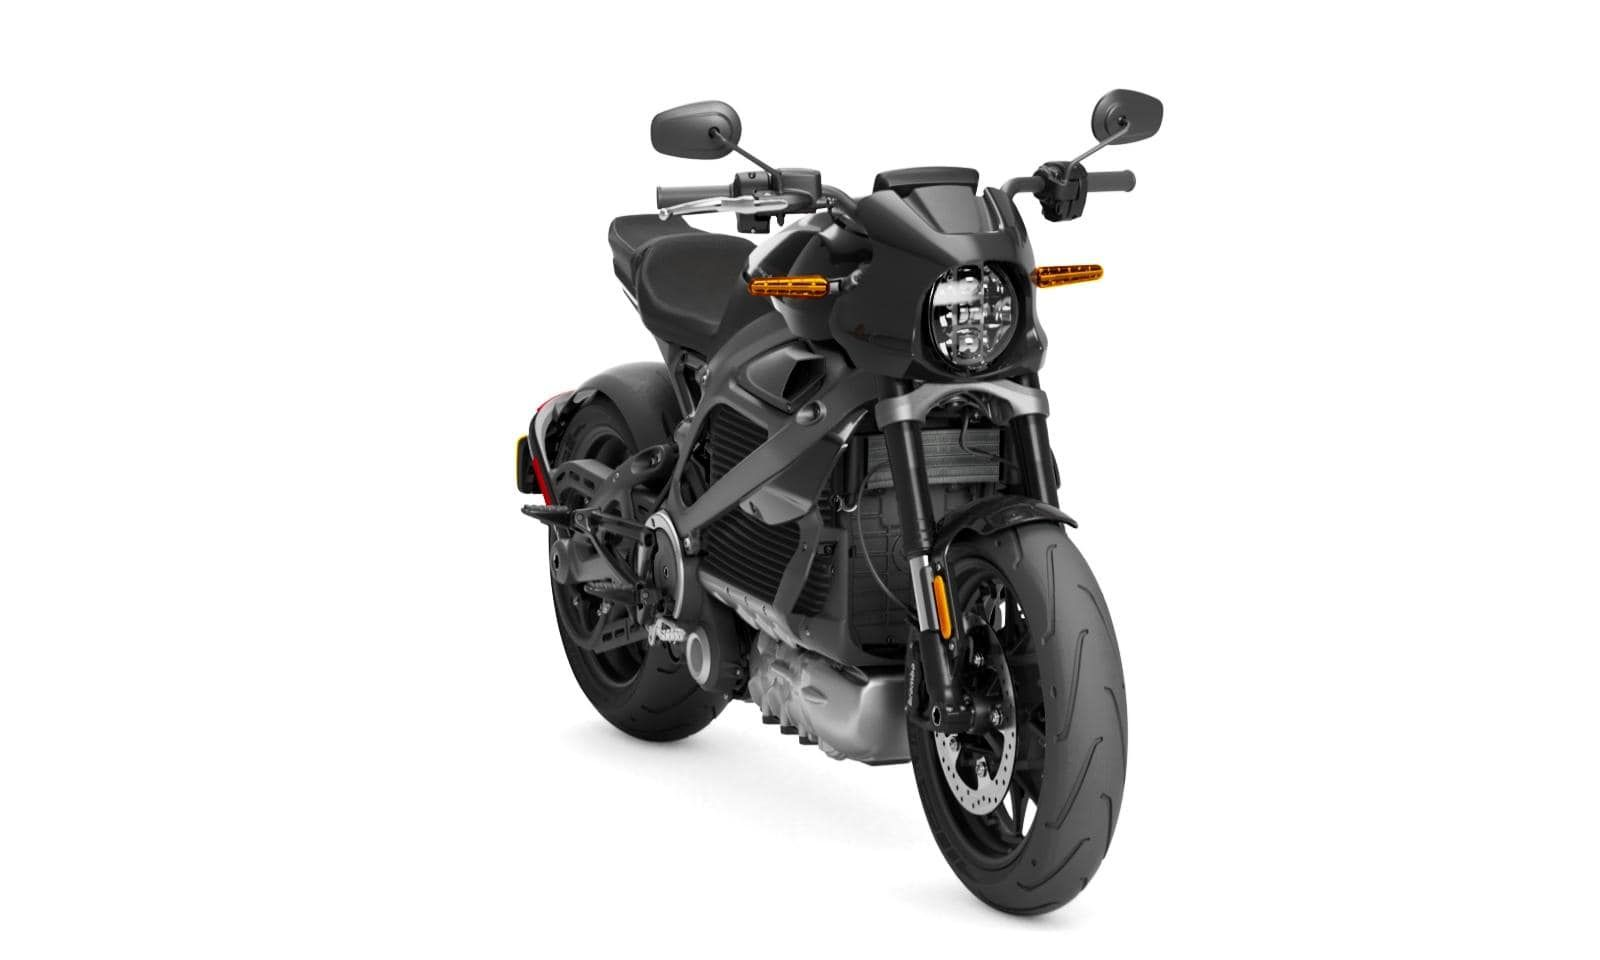 2020 Livewire Electric Motorcycle Harley Davidson Usa Motorcycle Harley Electric Motorcycle Harley Davidson Motorcycles